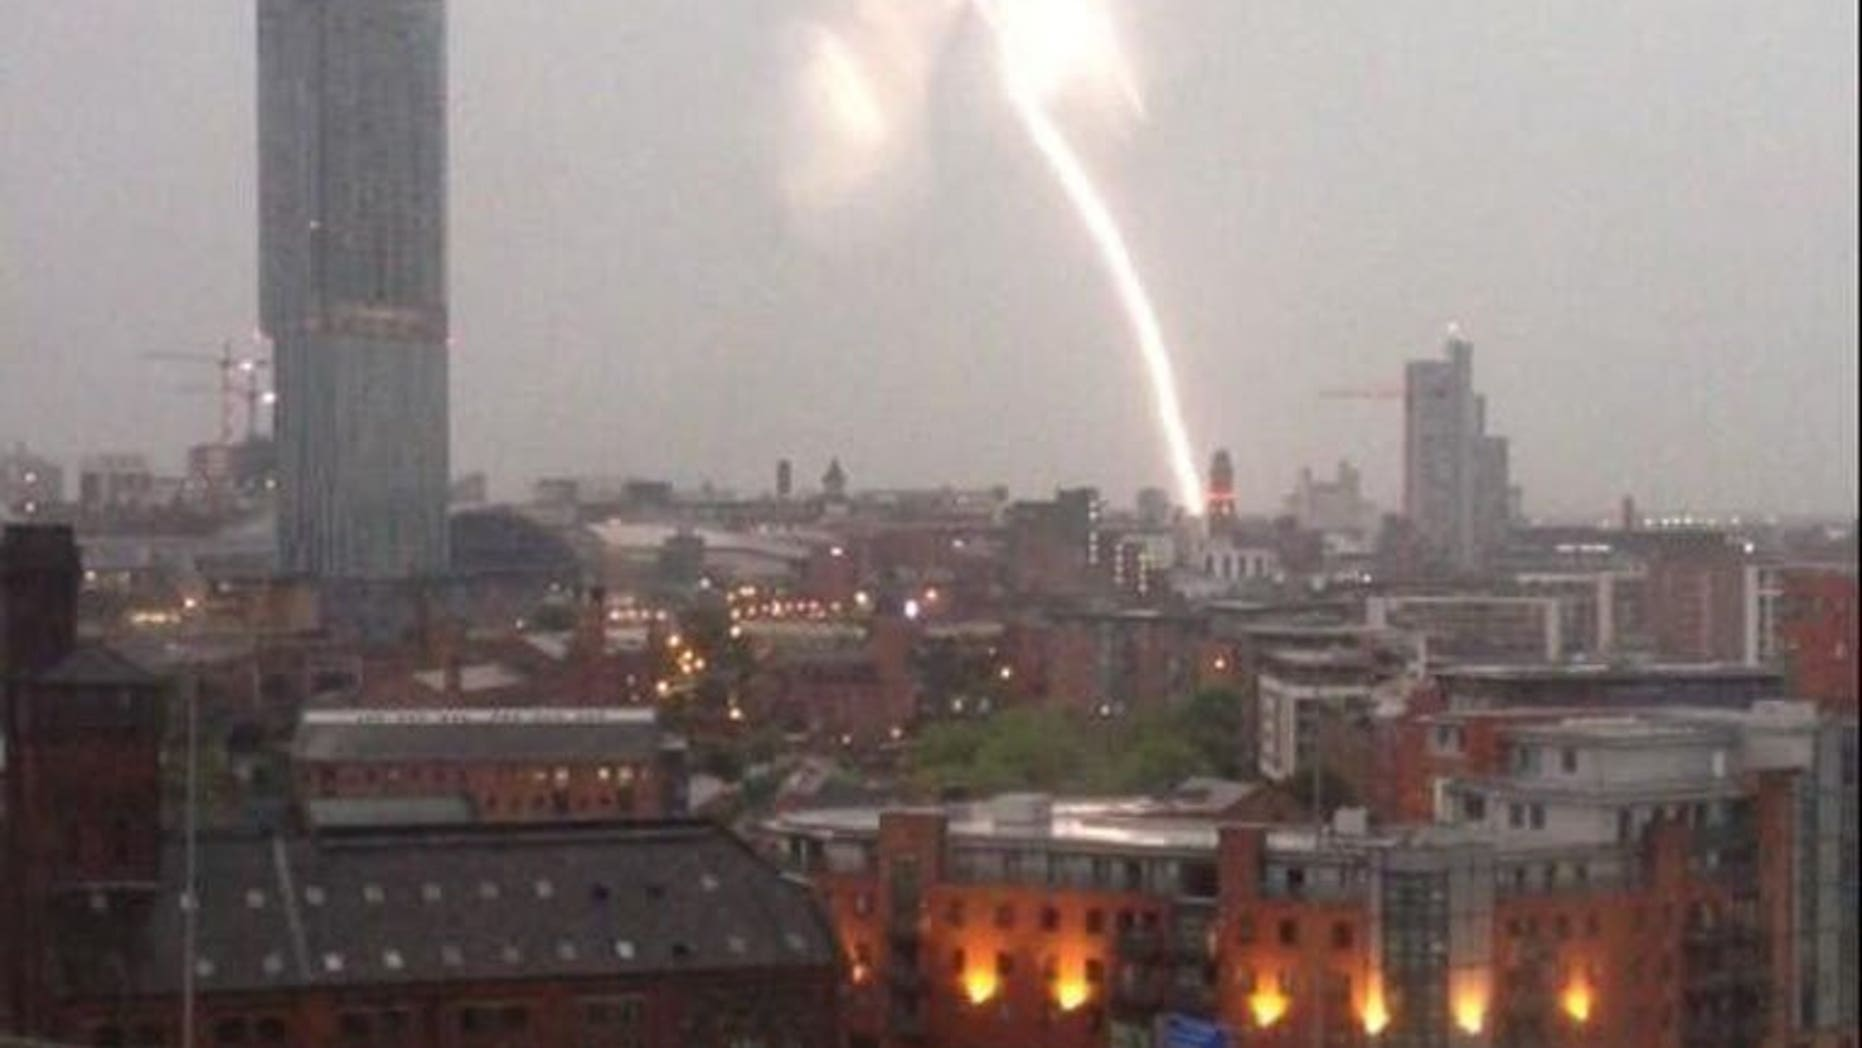 A screen grab from a video taken early on July 23, 2013 shows a lightning strike near Manchester Piccadilly train station in Manchester, north-west England. Lightning strikes and flooding caused severe delays for commuters on several mainline rail services across England and Scotland early on Tuesday.